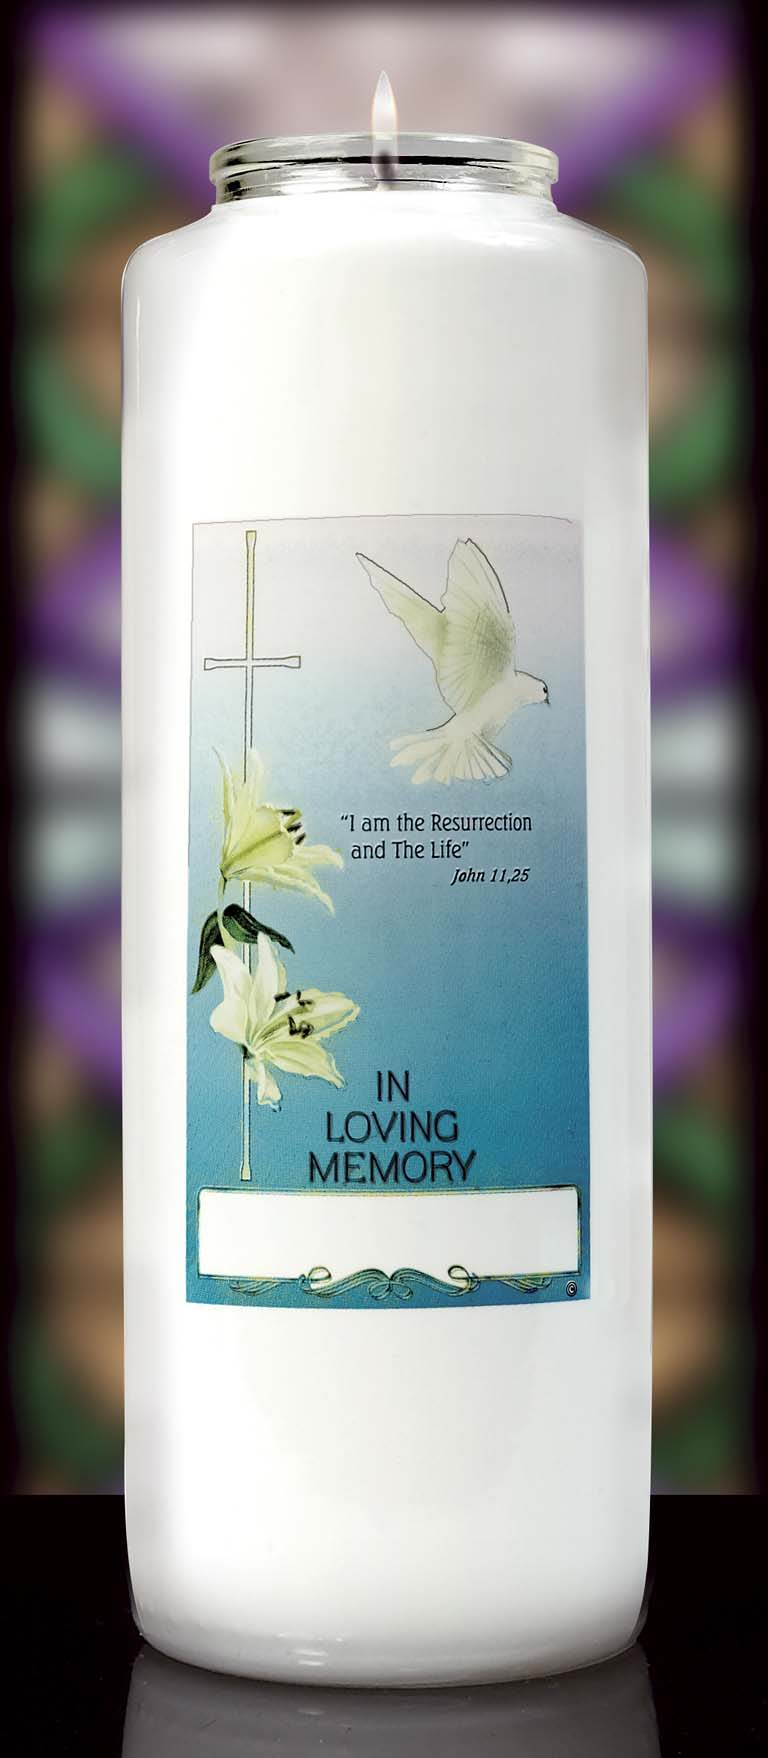 In Loving Memory Glass Bottle Style Candle